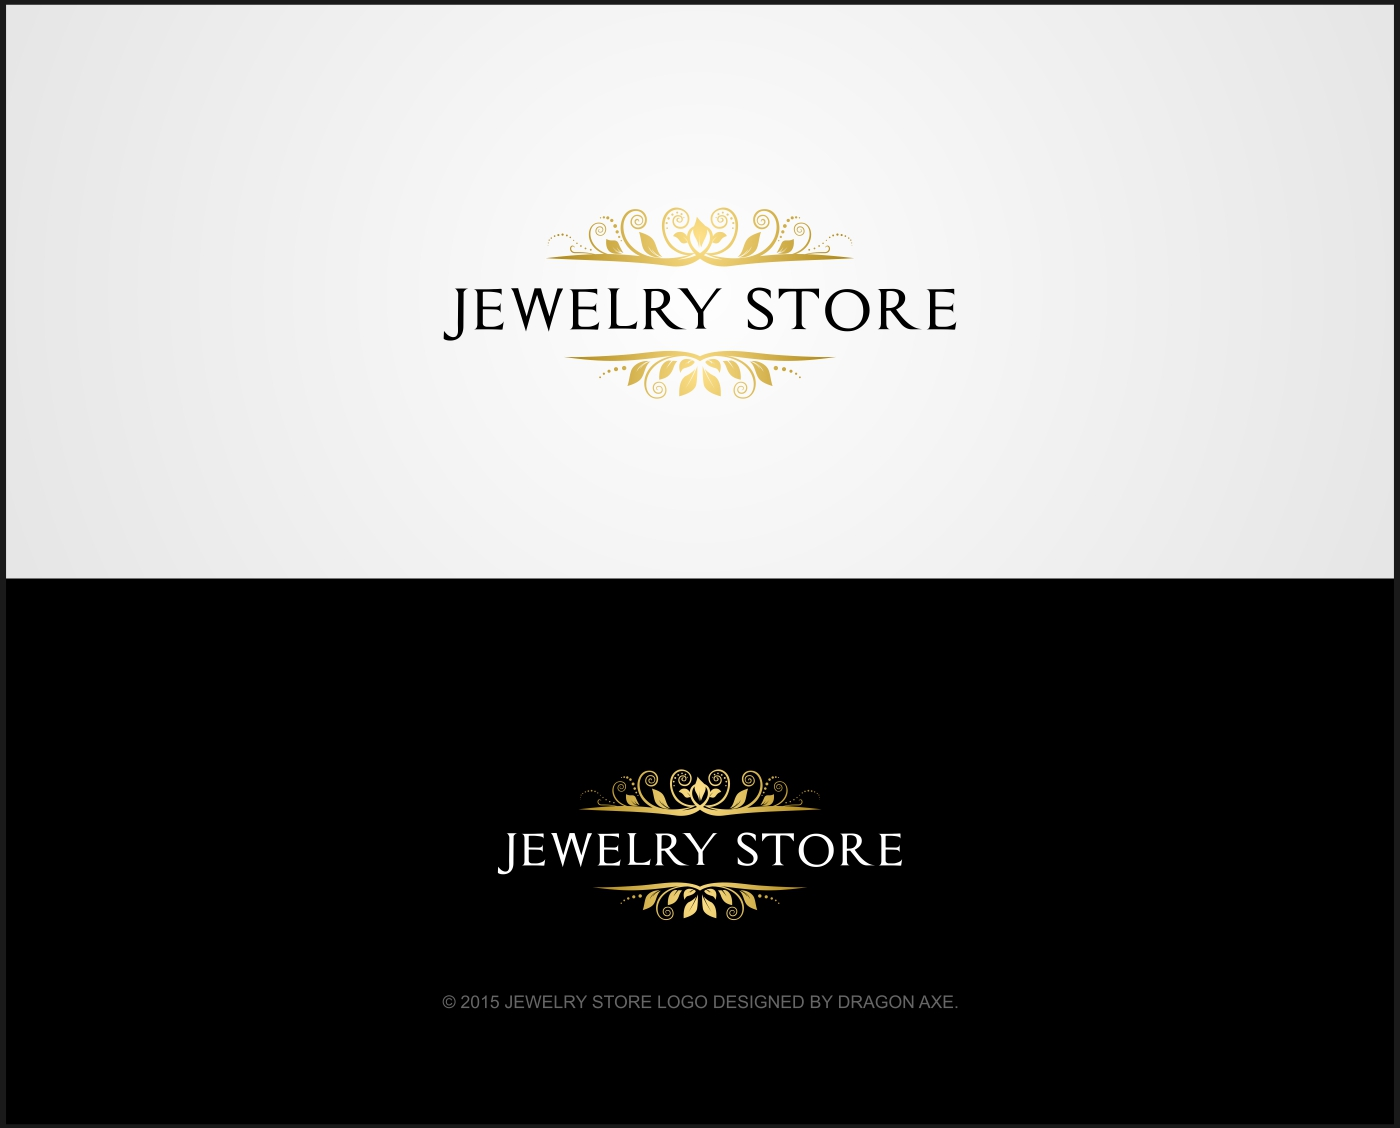 elegant playful jewelry logo design for jewelry store by